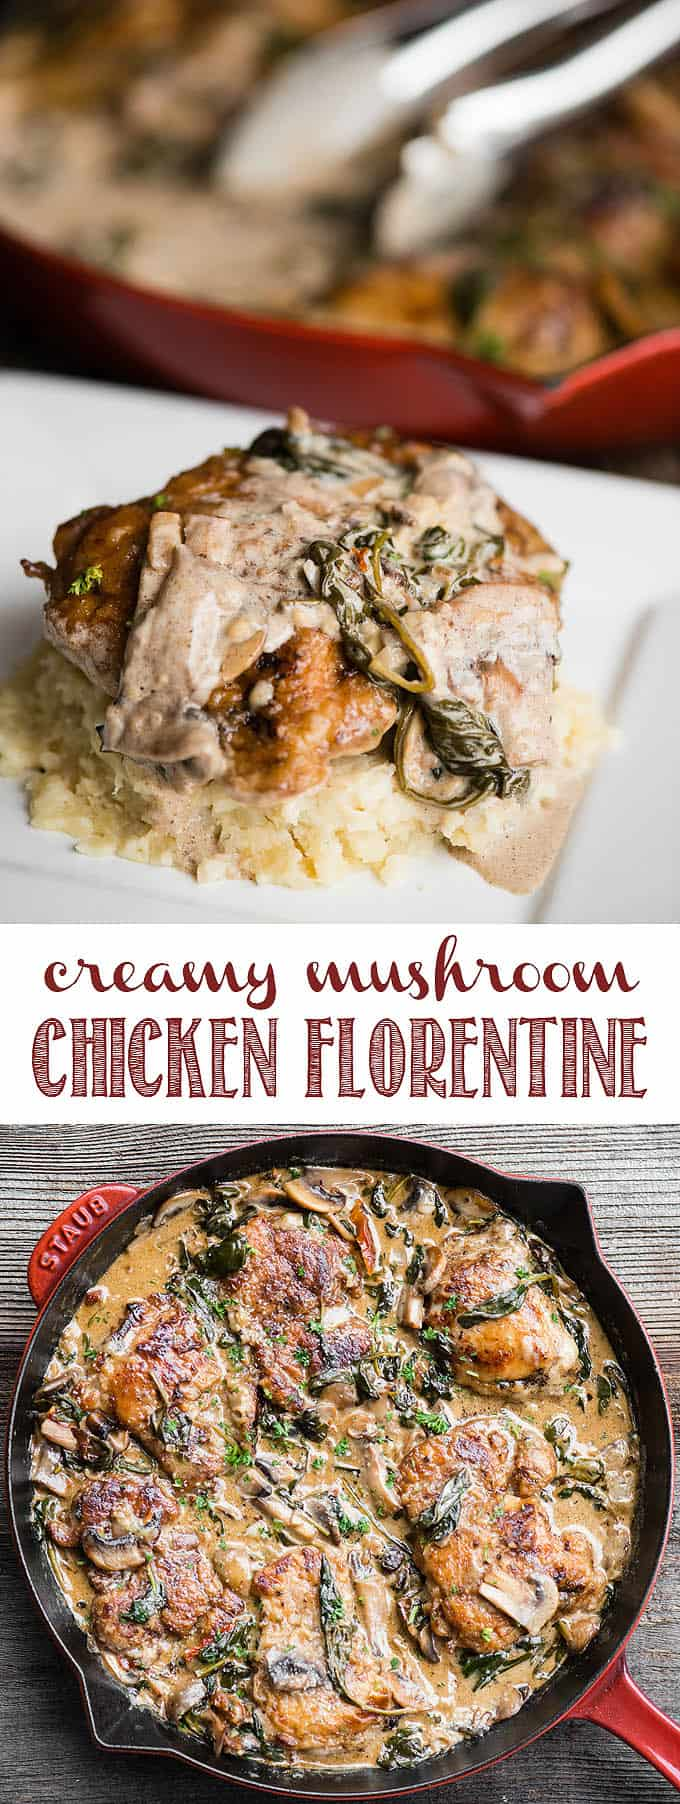 Creamy Mushroom Chicken Florentine with spinach is an outstanding and easy to make dinner recipe. This is especially true when served on top of homemade mashed potatoes or pasta and paired with a fresh green salad. If you're looking for a chicken dinner recipe that your family will love, look no further. #chicken #mushroom #spinach #chickenflorentine #dinner #chickendinner